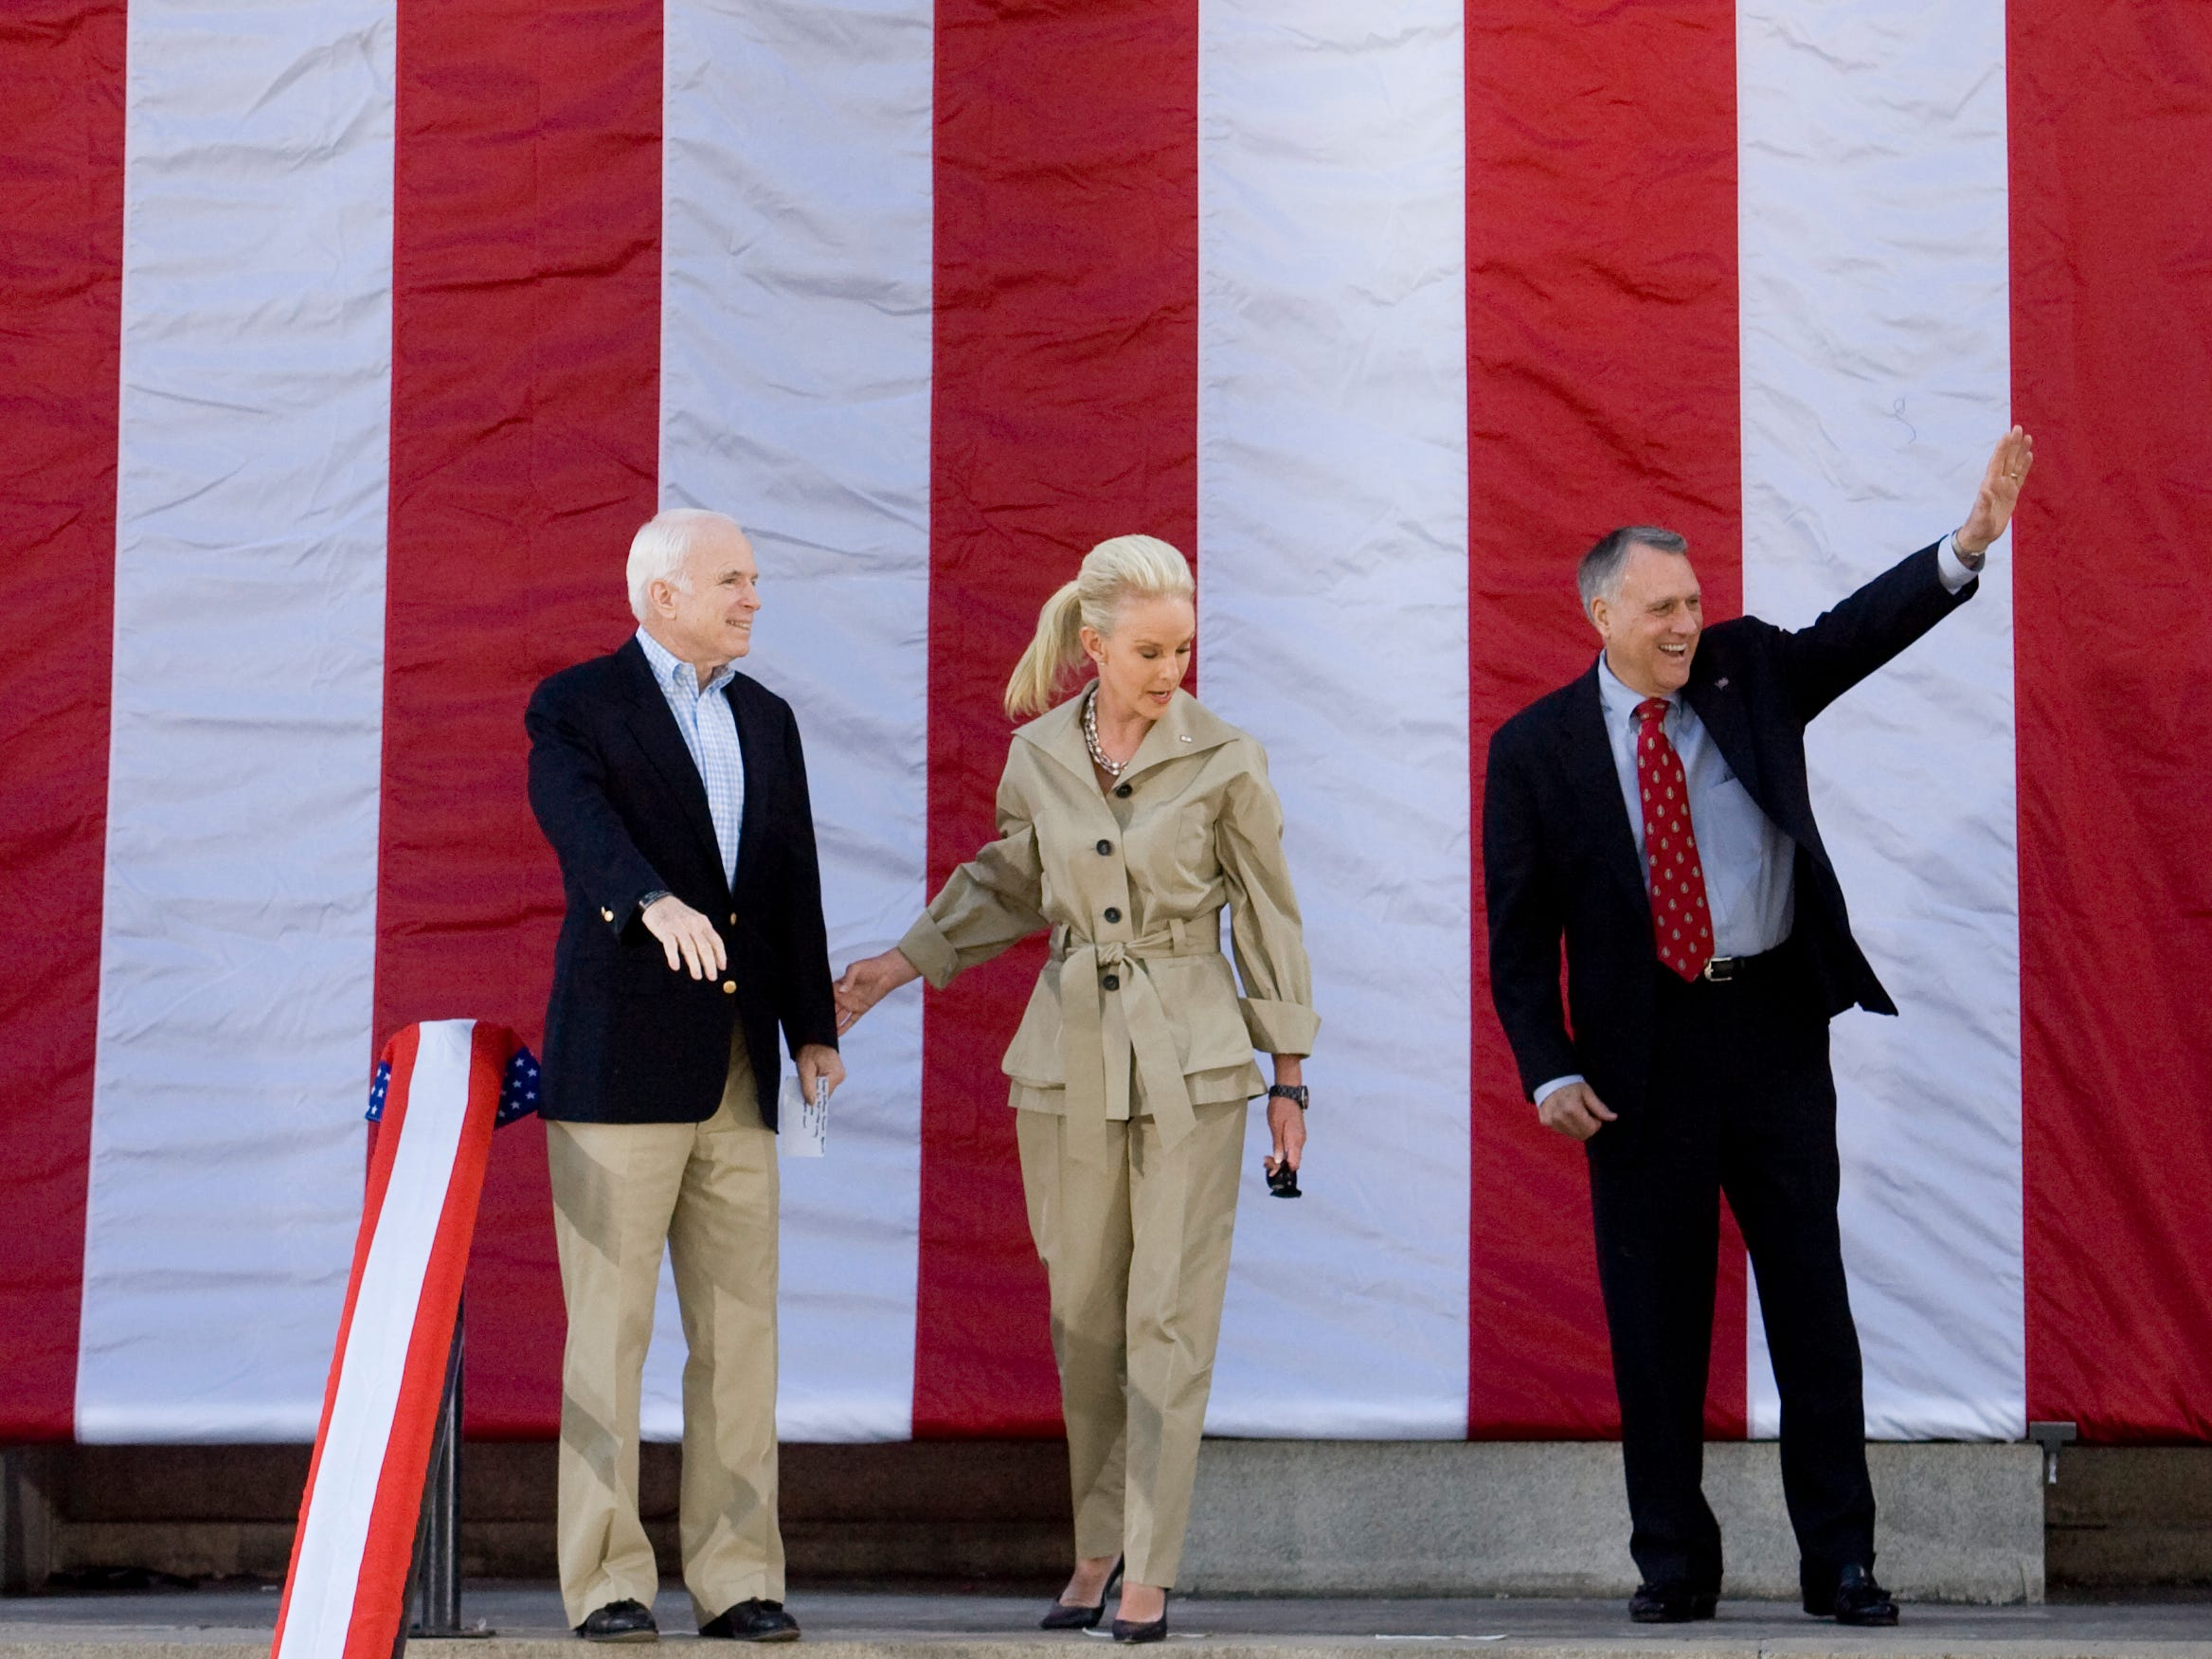 Presidential candidate John McCain, Cindy McCain, and Senator Jon Kyl greet a crowd from the steps of the Yavapai County Court House in Prescott, April 5, 2008.